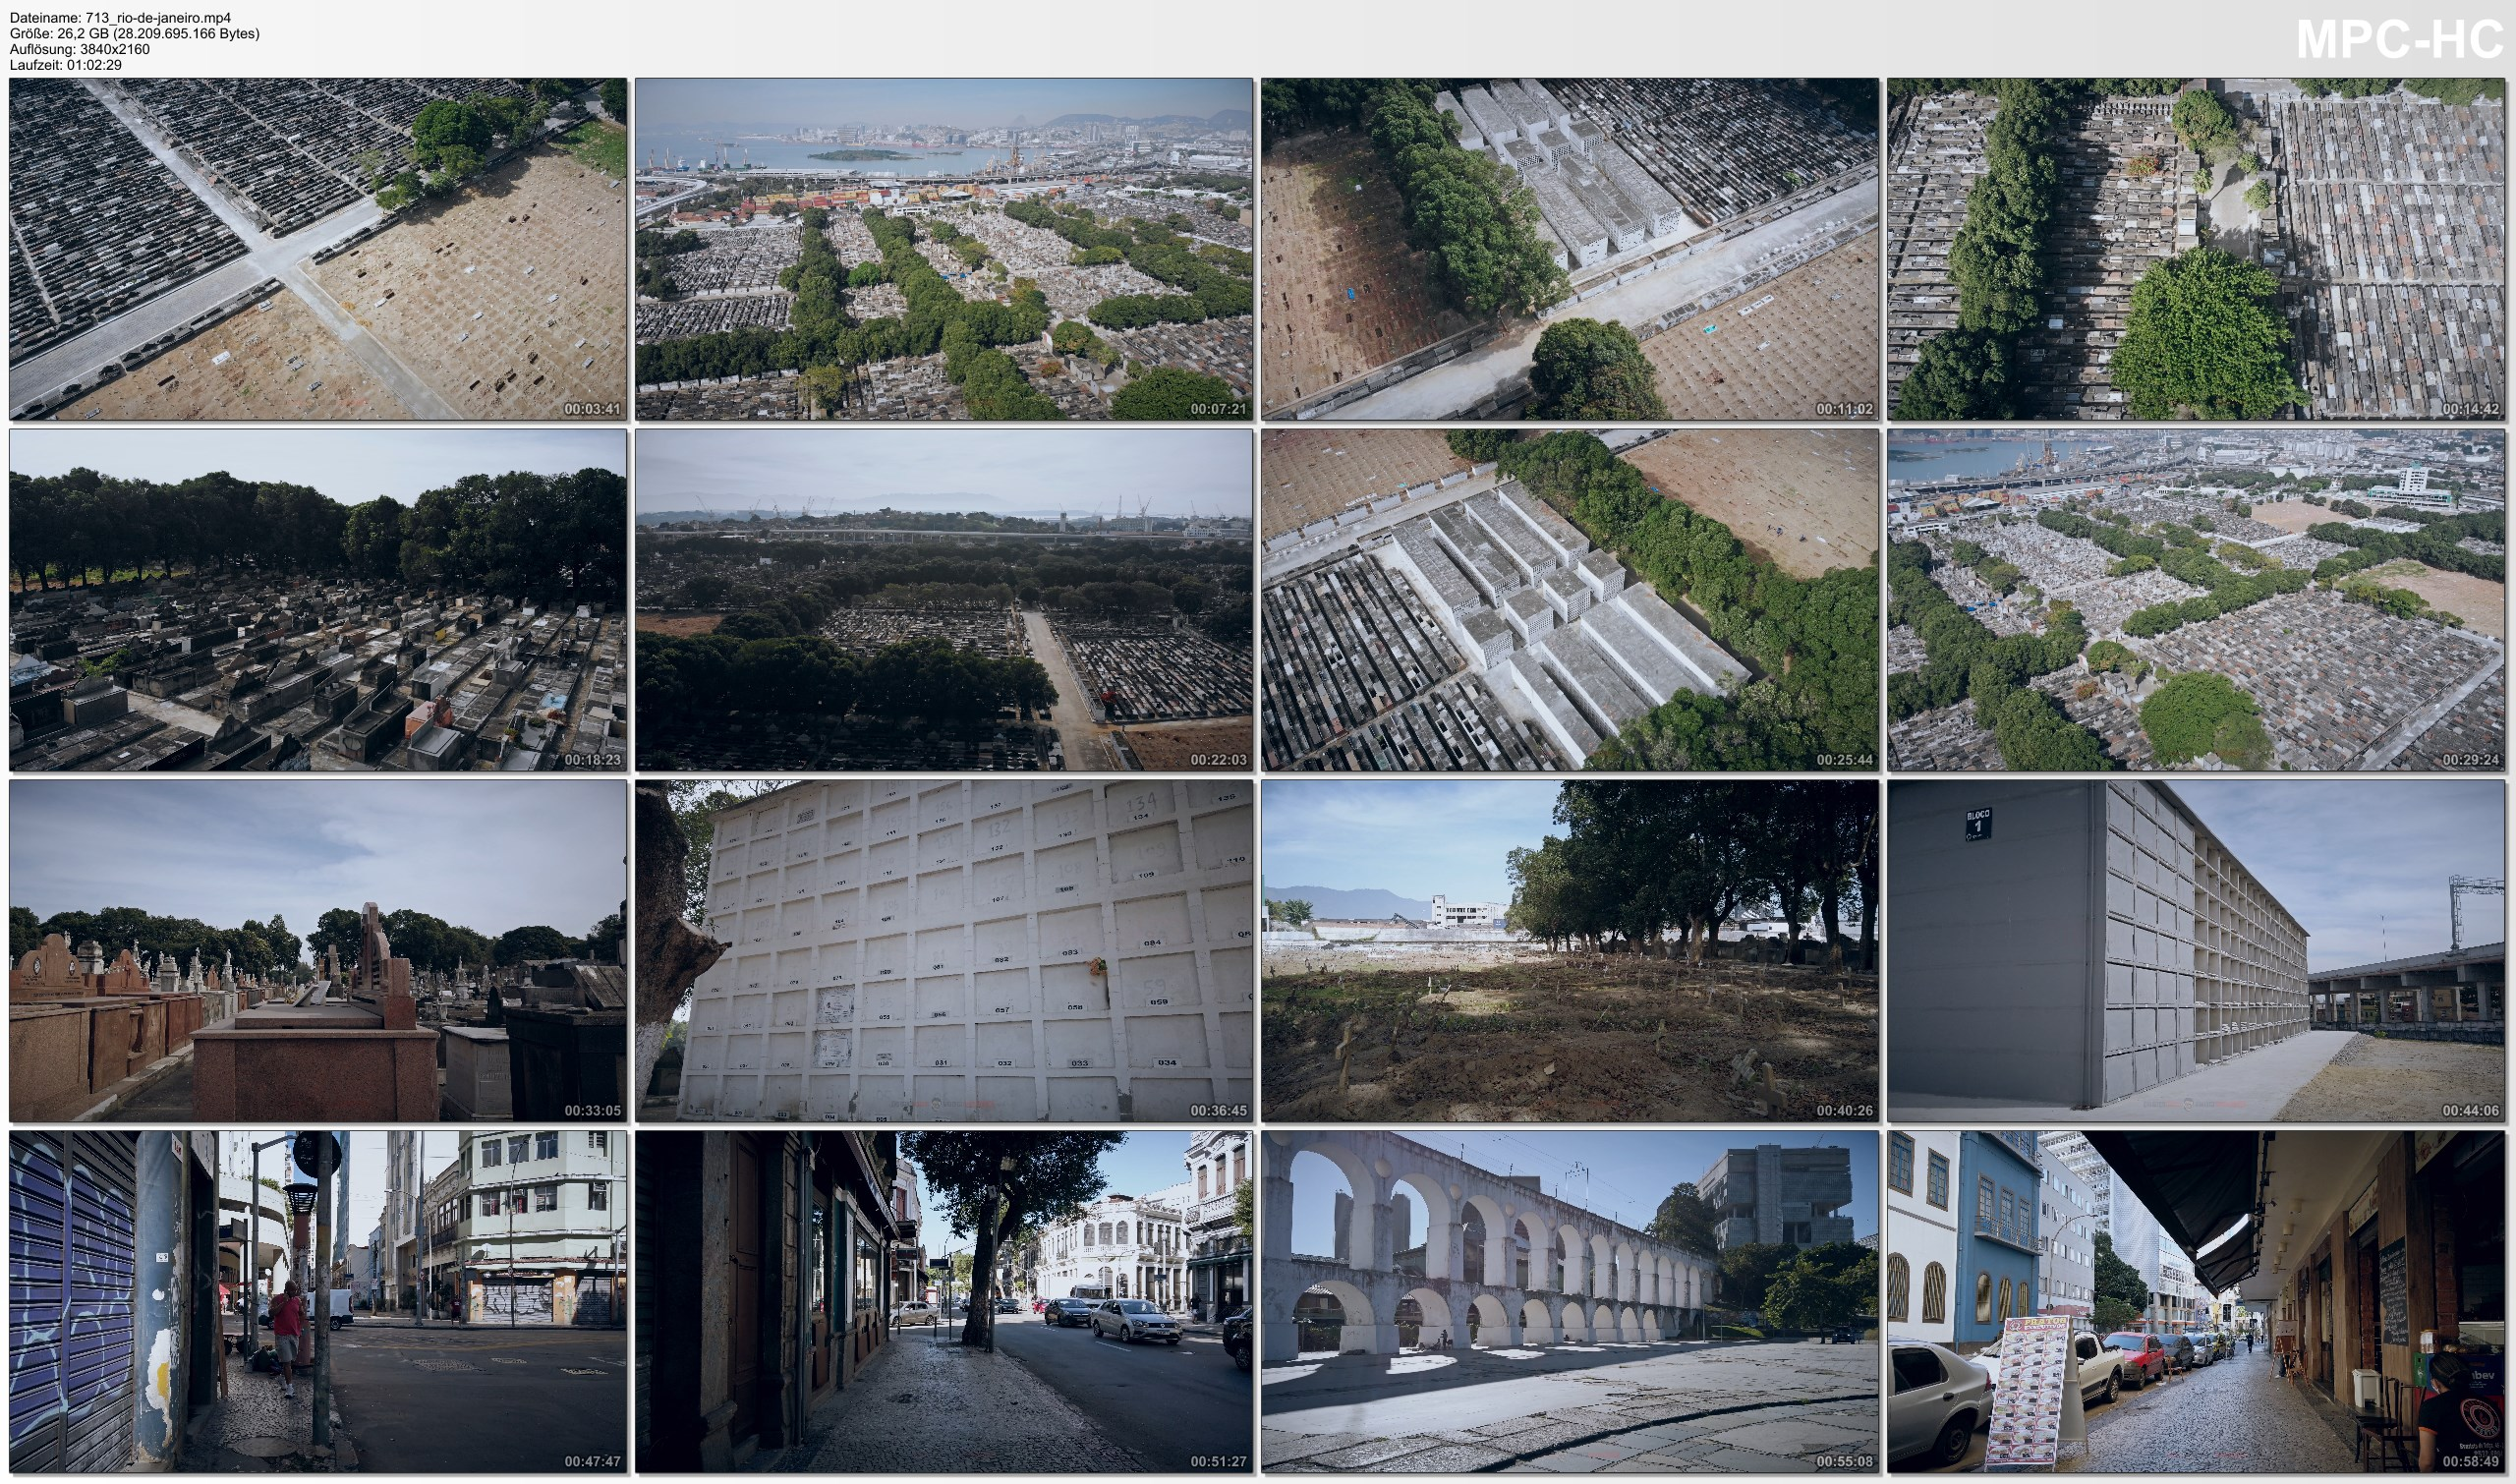 Drone Pictures from Video 【4K】1 HOUR DRONE FILM: «Covid-19 Cemetery | Caju, Rio de Janeiro» Ultra HD (for 2160p Ambient TV)